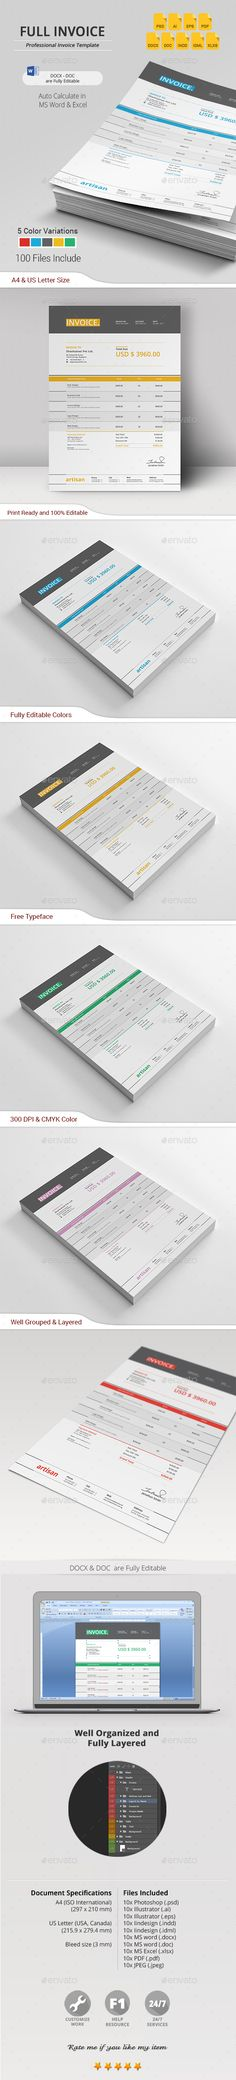 Invoice - Download Invoice